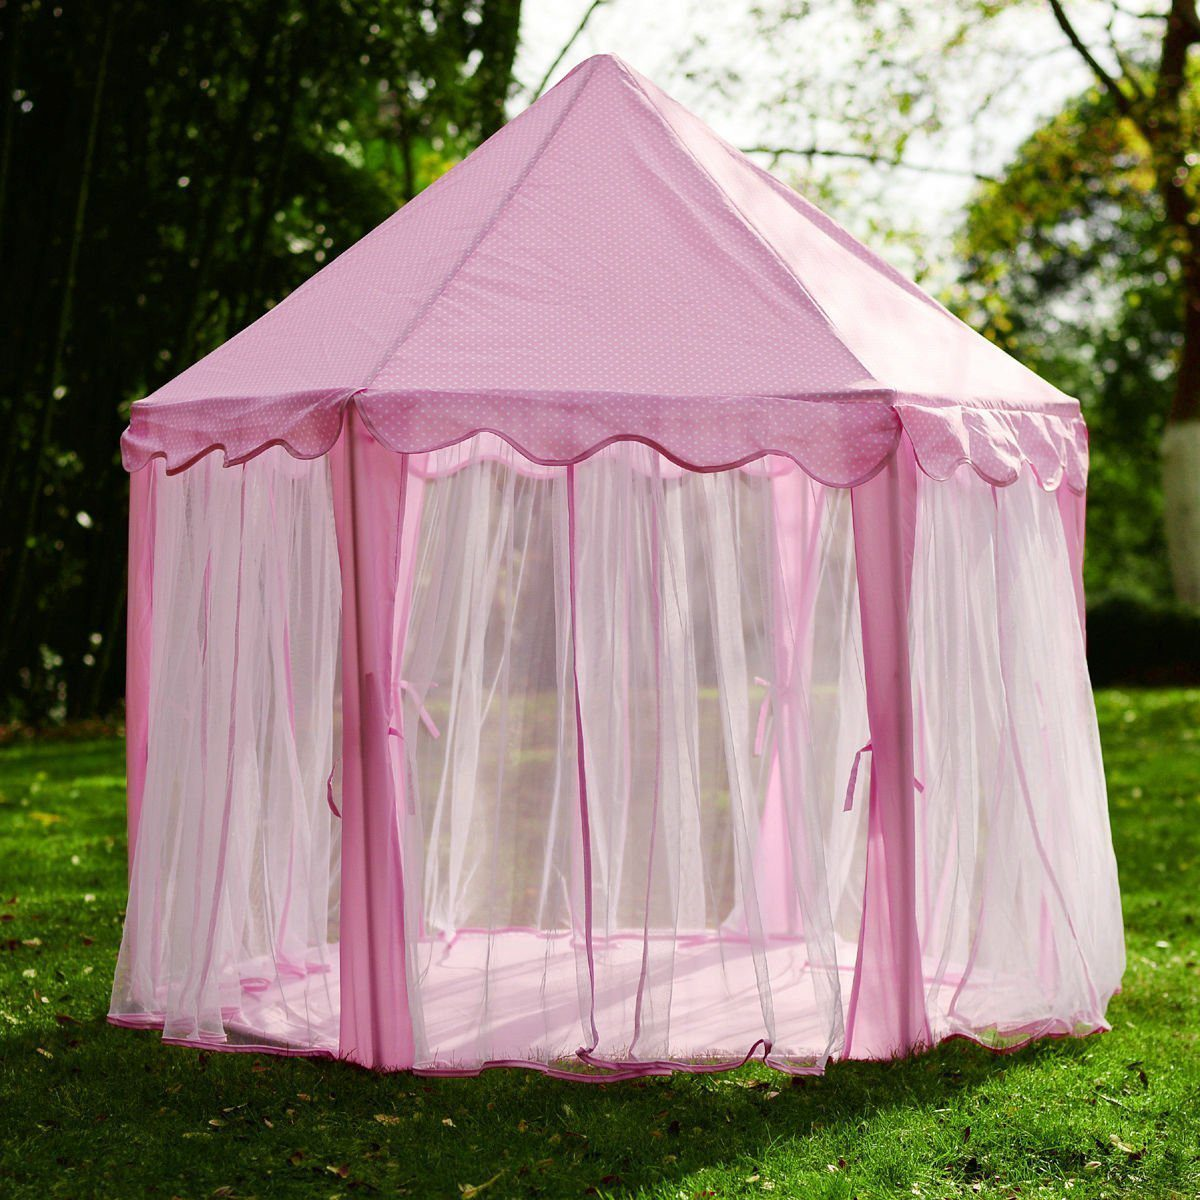 Princess Castle Kids Play Tent With Star LED Lights 6 & Deals Finders | Amazon : Princess Castle Kids Play Tent With Star ...